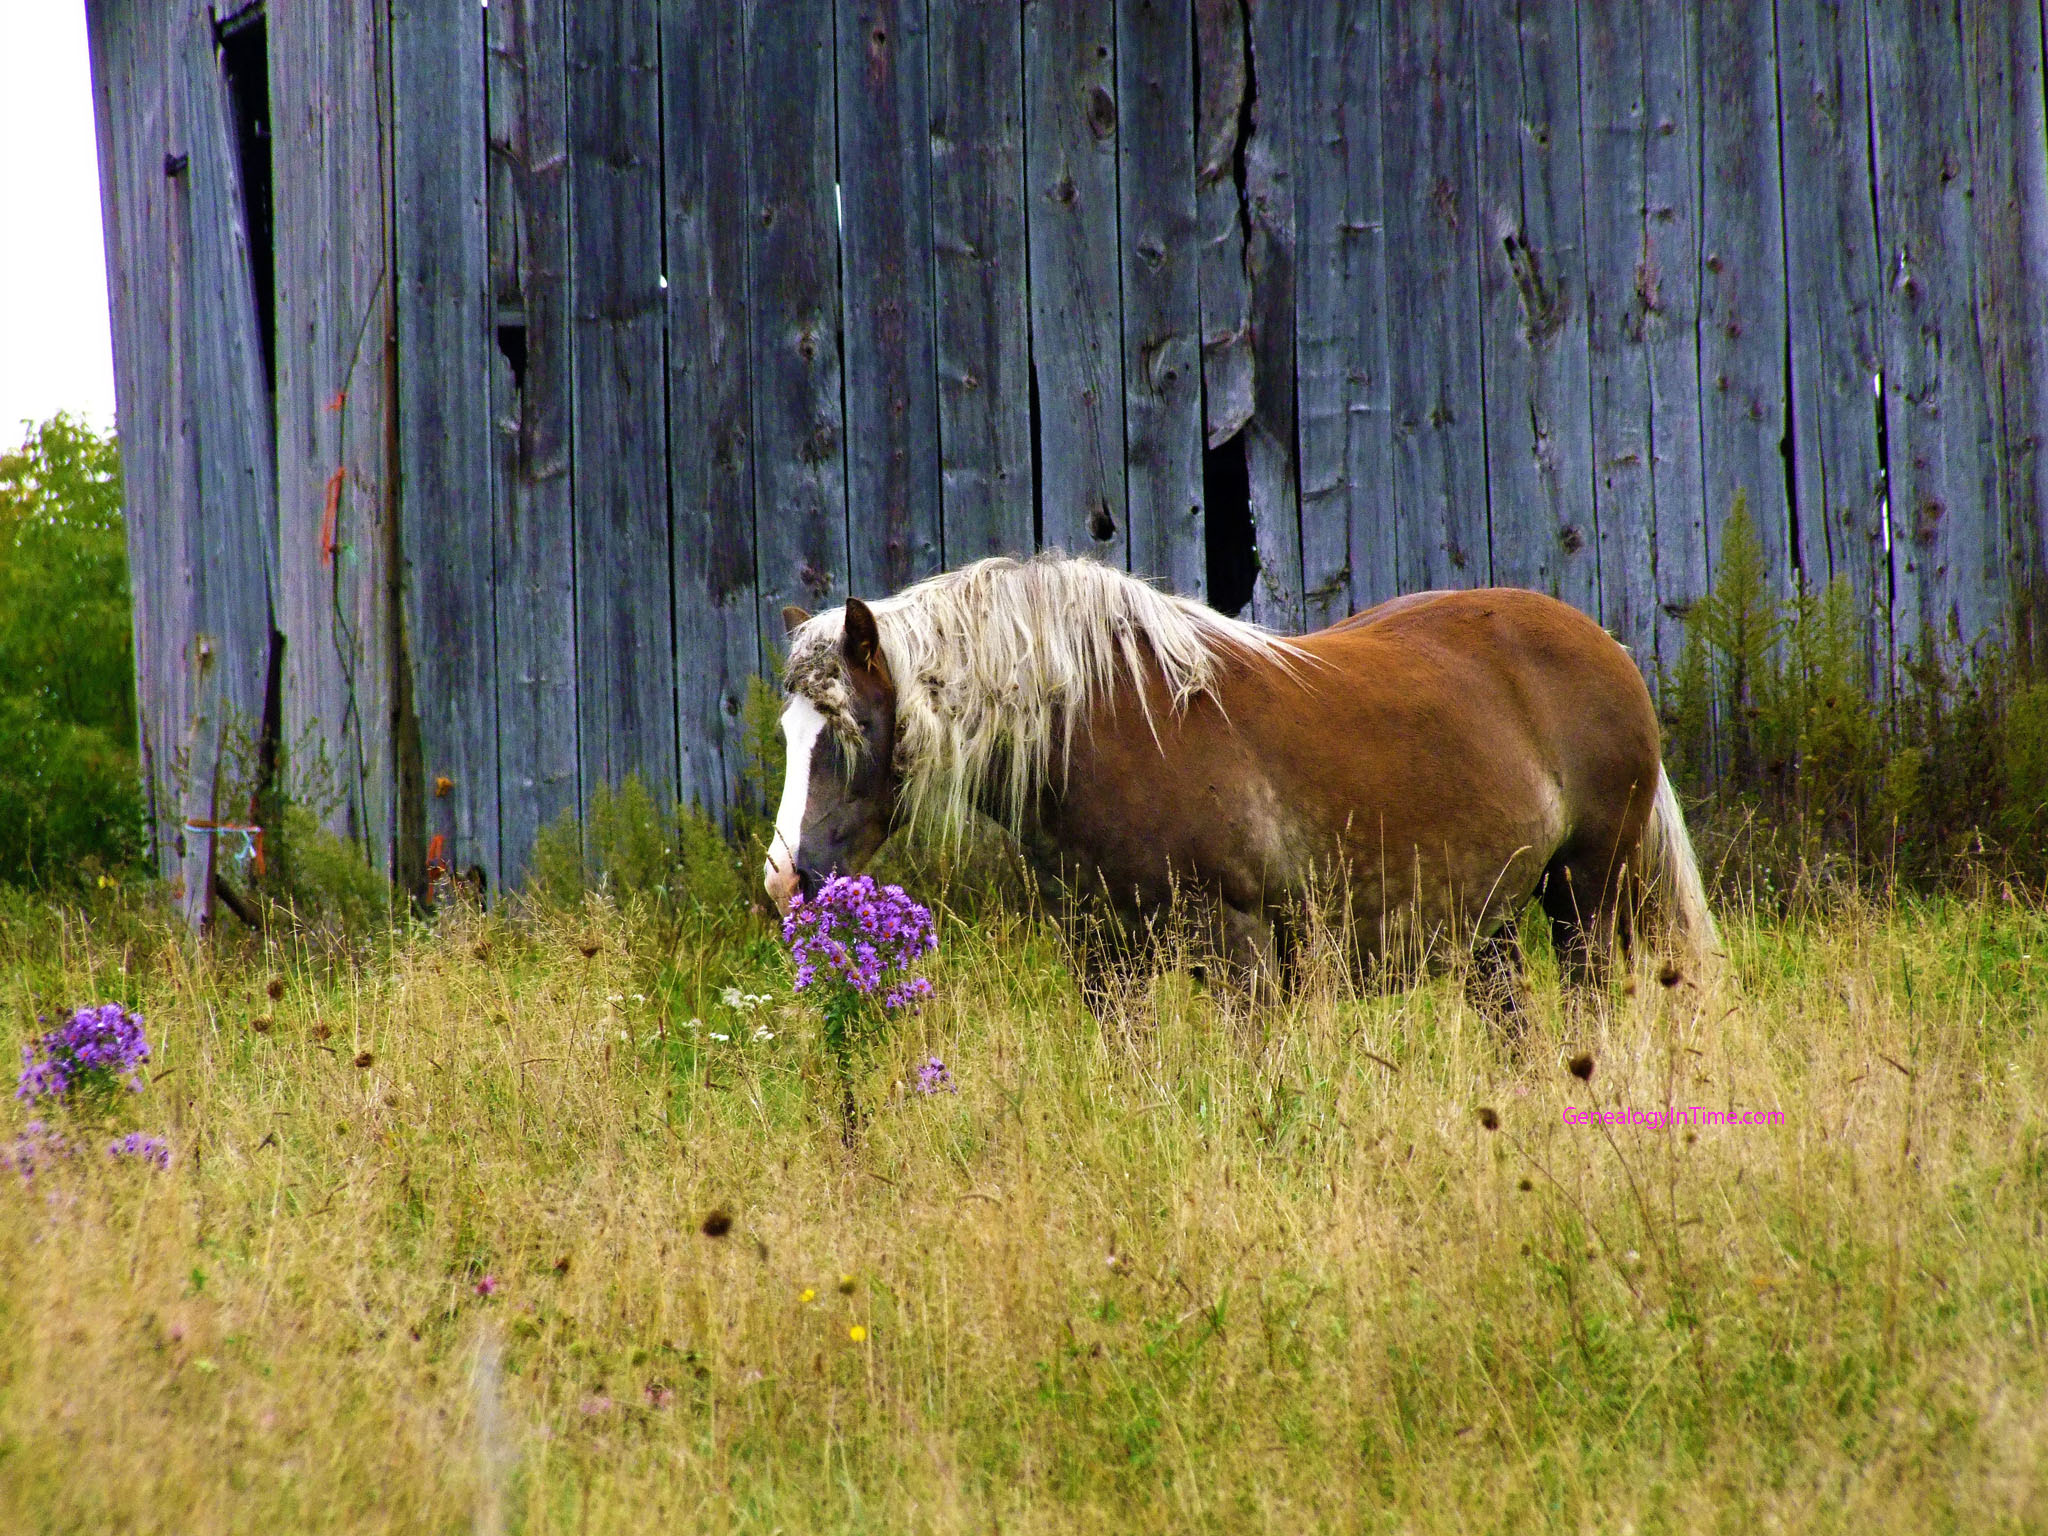 horses and flowers wallpaper - photo #14